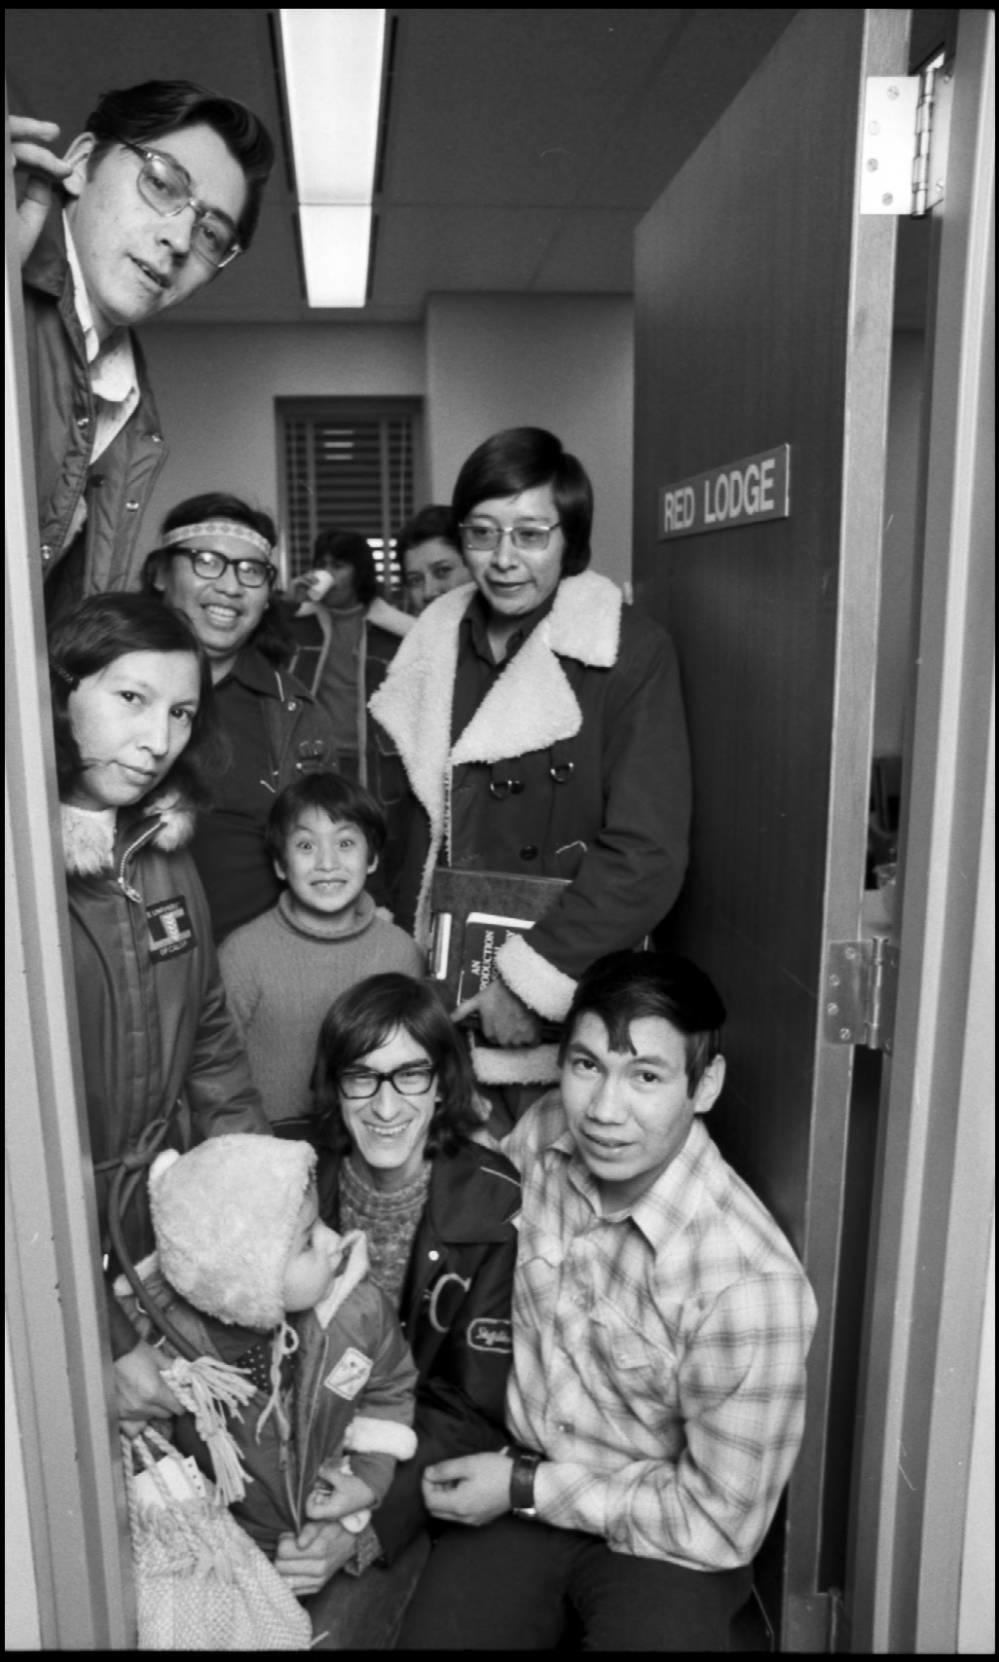 Aboriginal students using the Red Lodge Indian Student Room in the Education building in December 1972